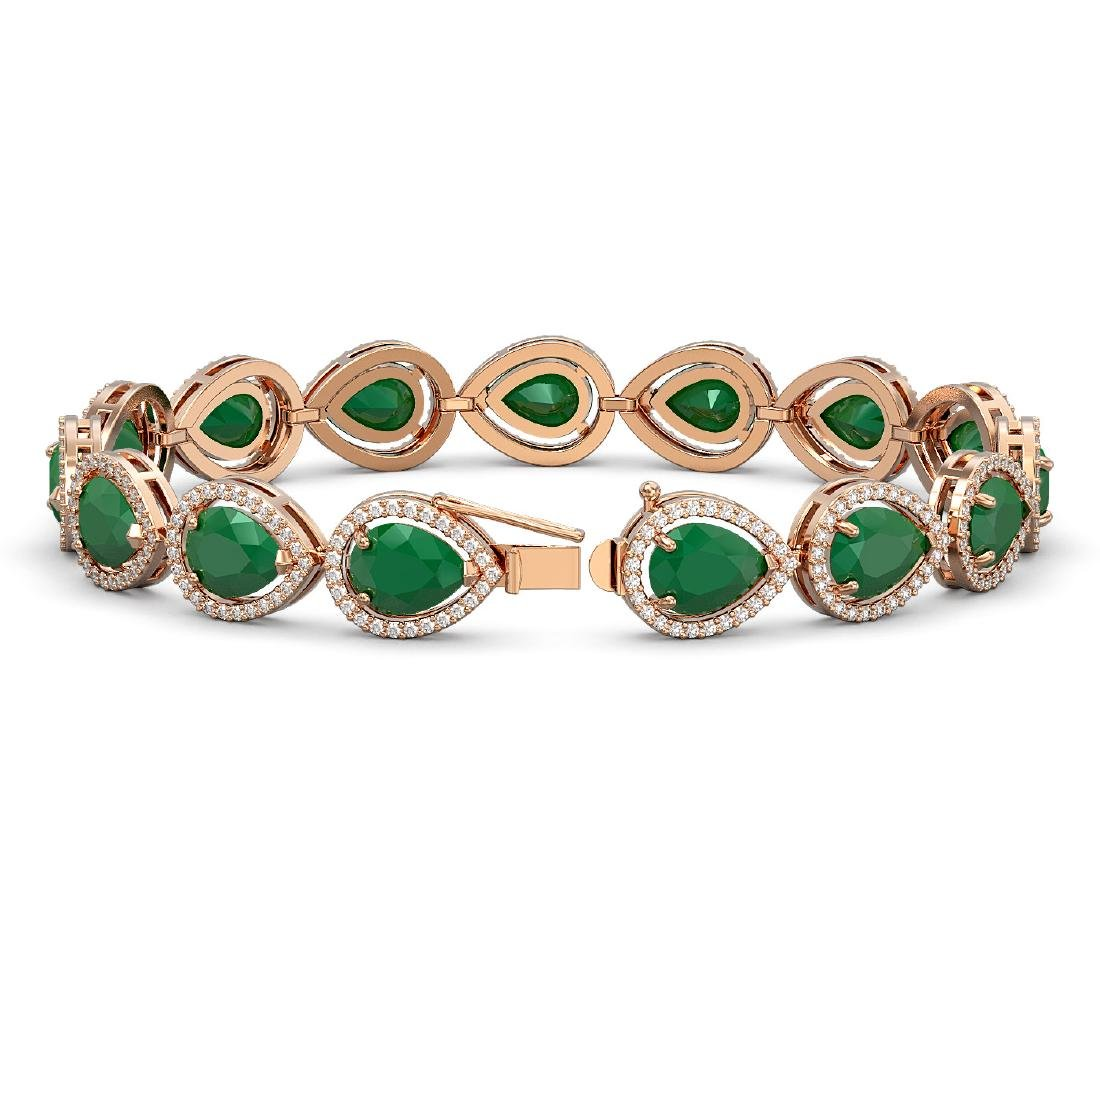 30.06 CTW Emerald & Diamond Halo Bracelet 10K Rose Gold - 2